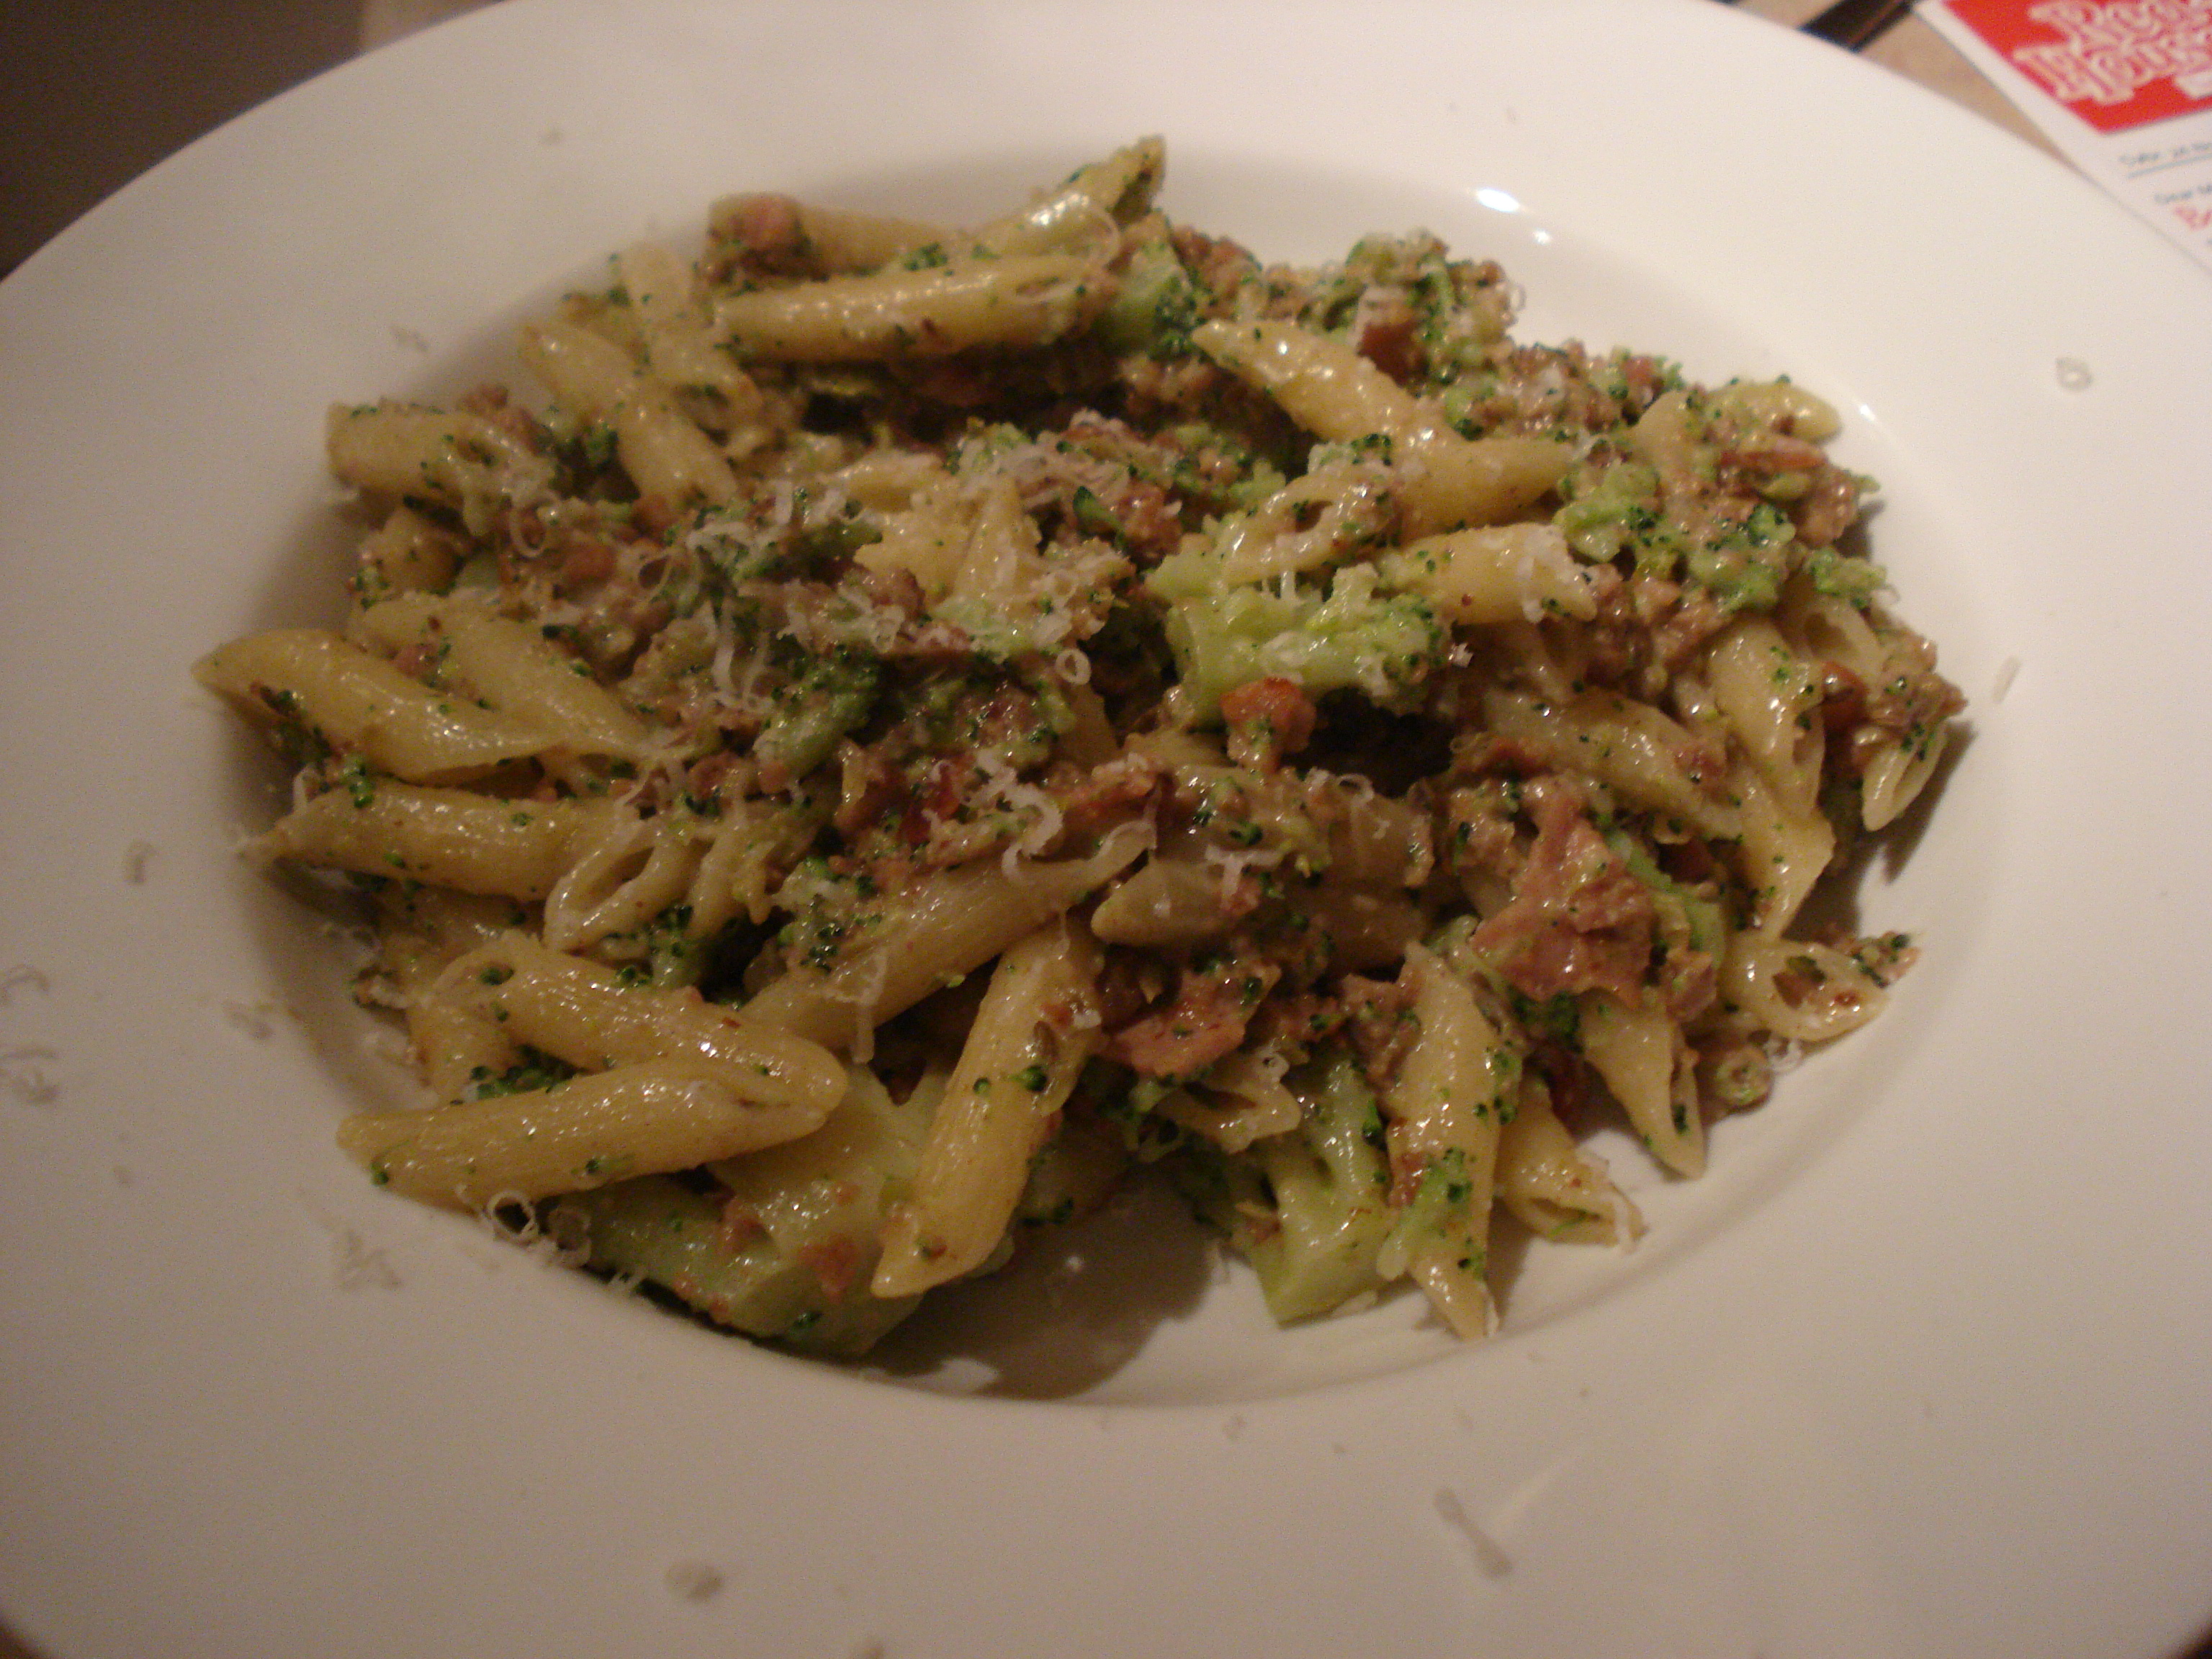 penne with sausage and broccoli